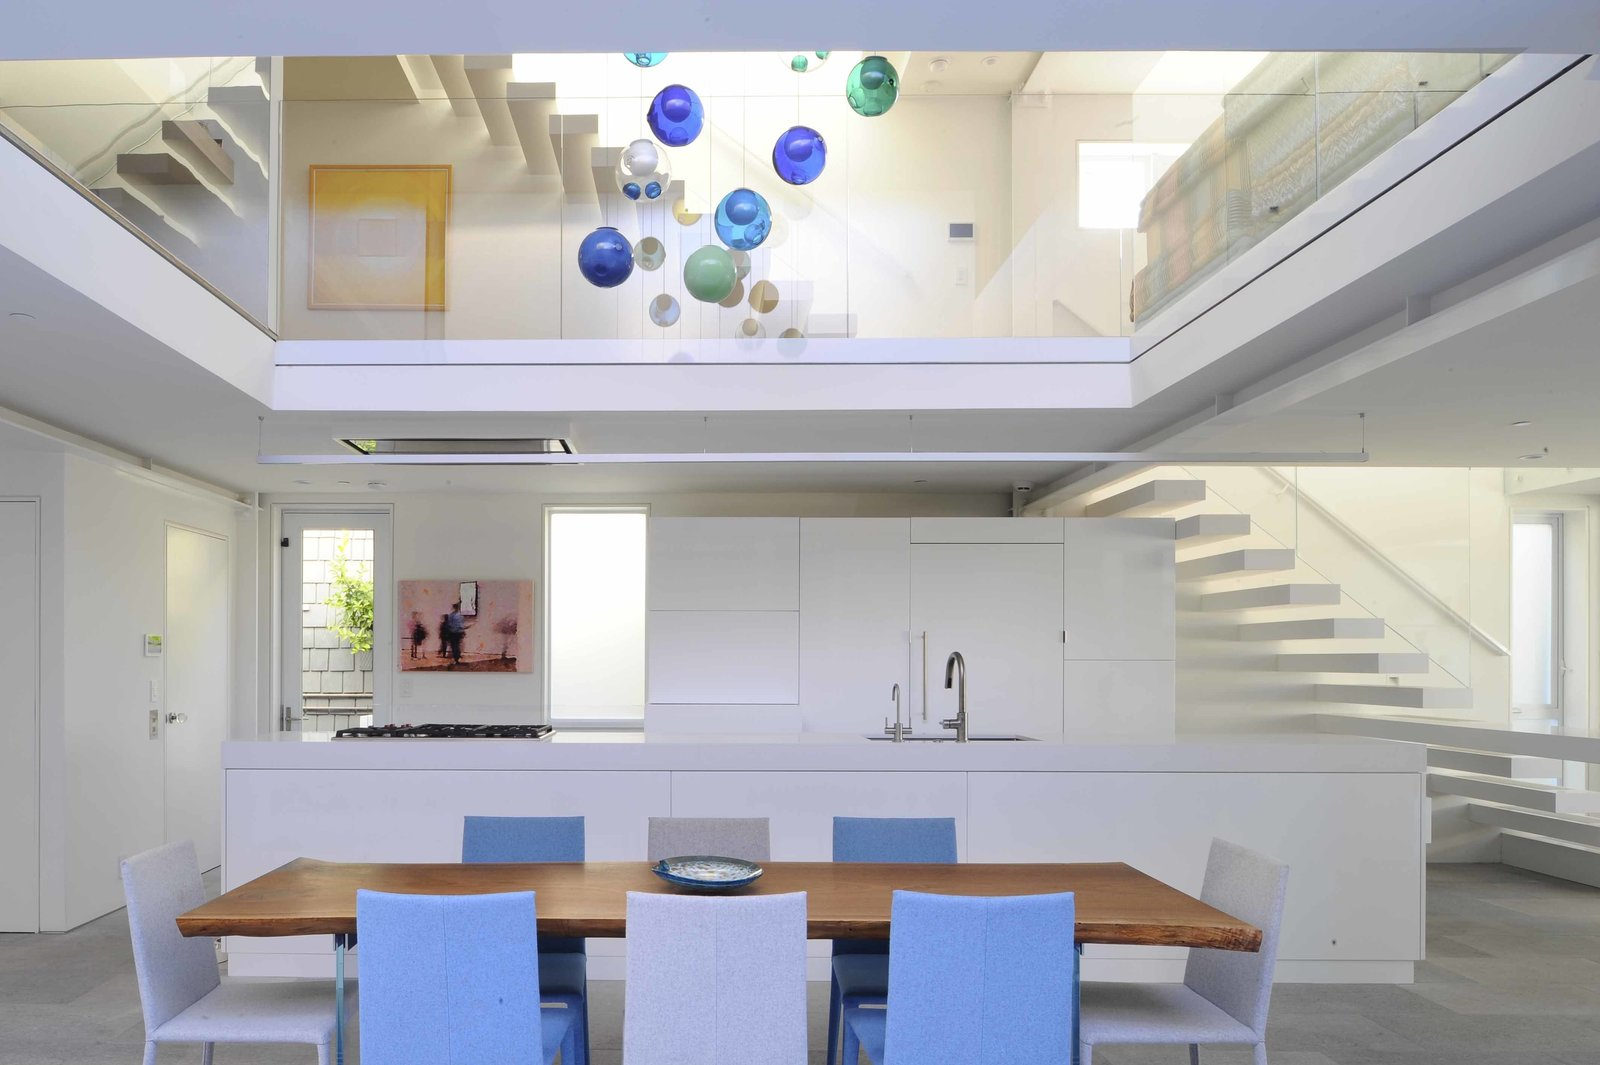 Kitchen, Pendant, White, Limestone, Quartzite, Ceiling, Refrigerator, Microwave, Dishwasher, Wine Cooler, Range, Range Hood, and Undermount The all-white kitchen is open to the upper level. One tread of the stairs extends out to become a countertop and the live-edge dining room table is surrounded by blue and grey chairs that are part of a palette inspired by the beach setting.  Best Kitchen Quartzite Limestone Microwave White Photos from Beach House